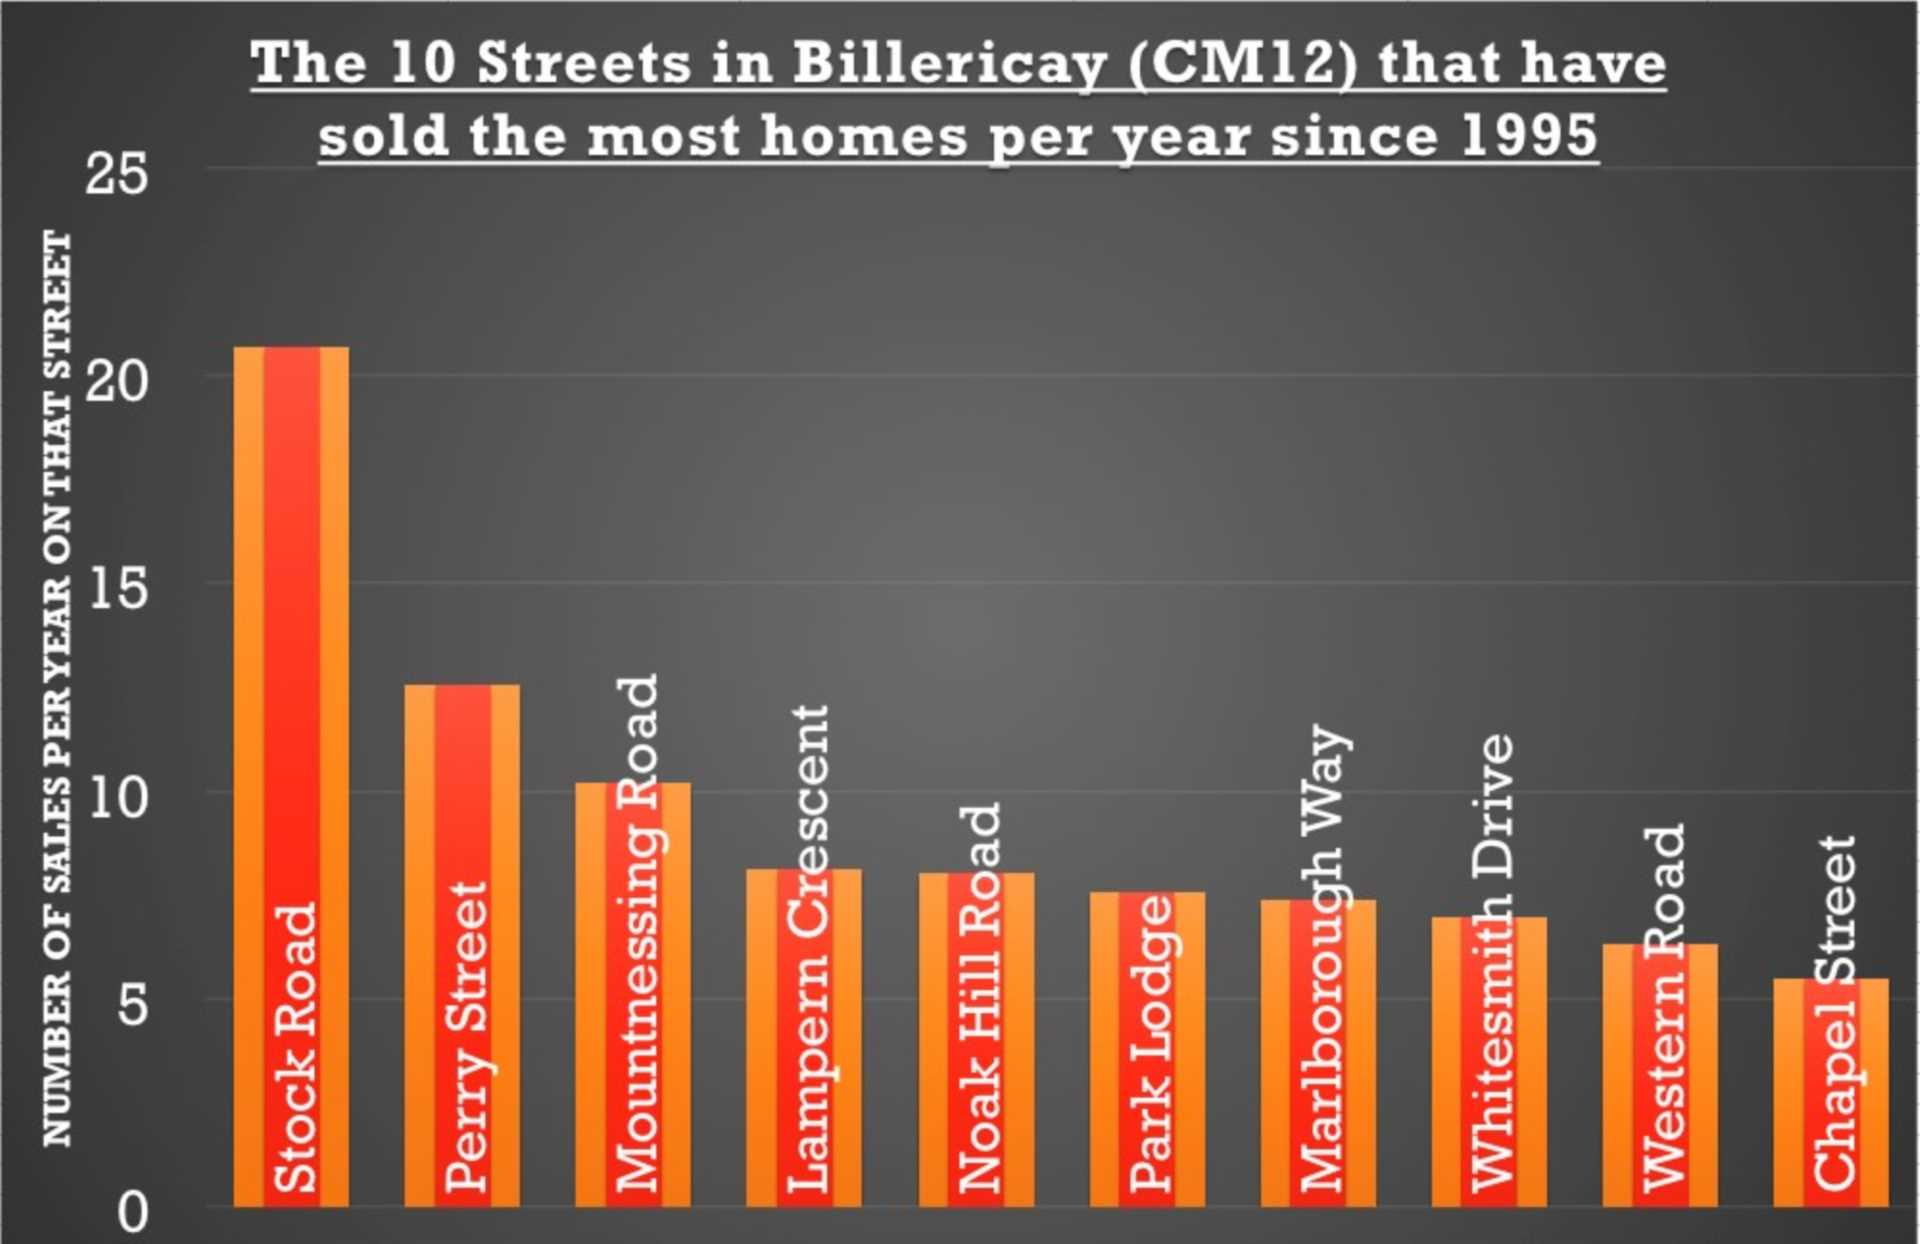 Stock Road … the Road Where People Move the Most in Billericay